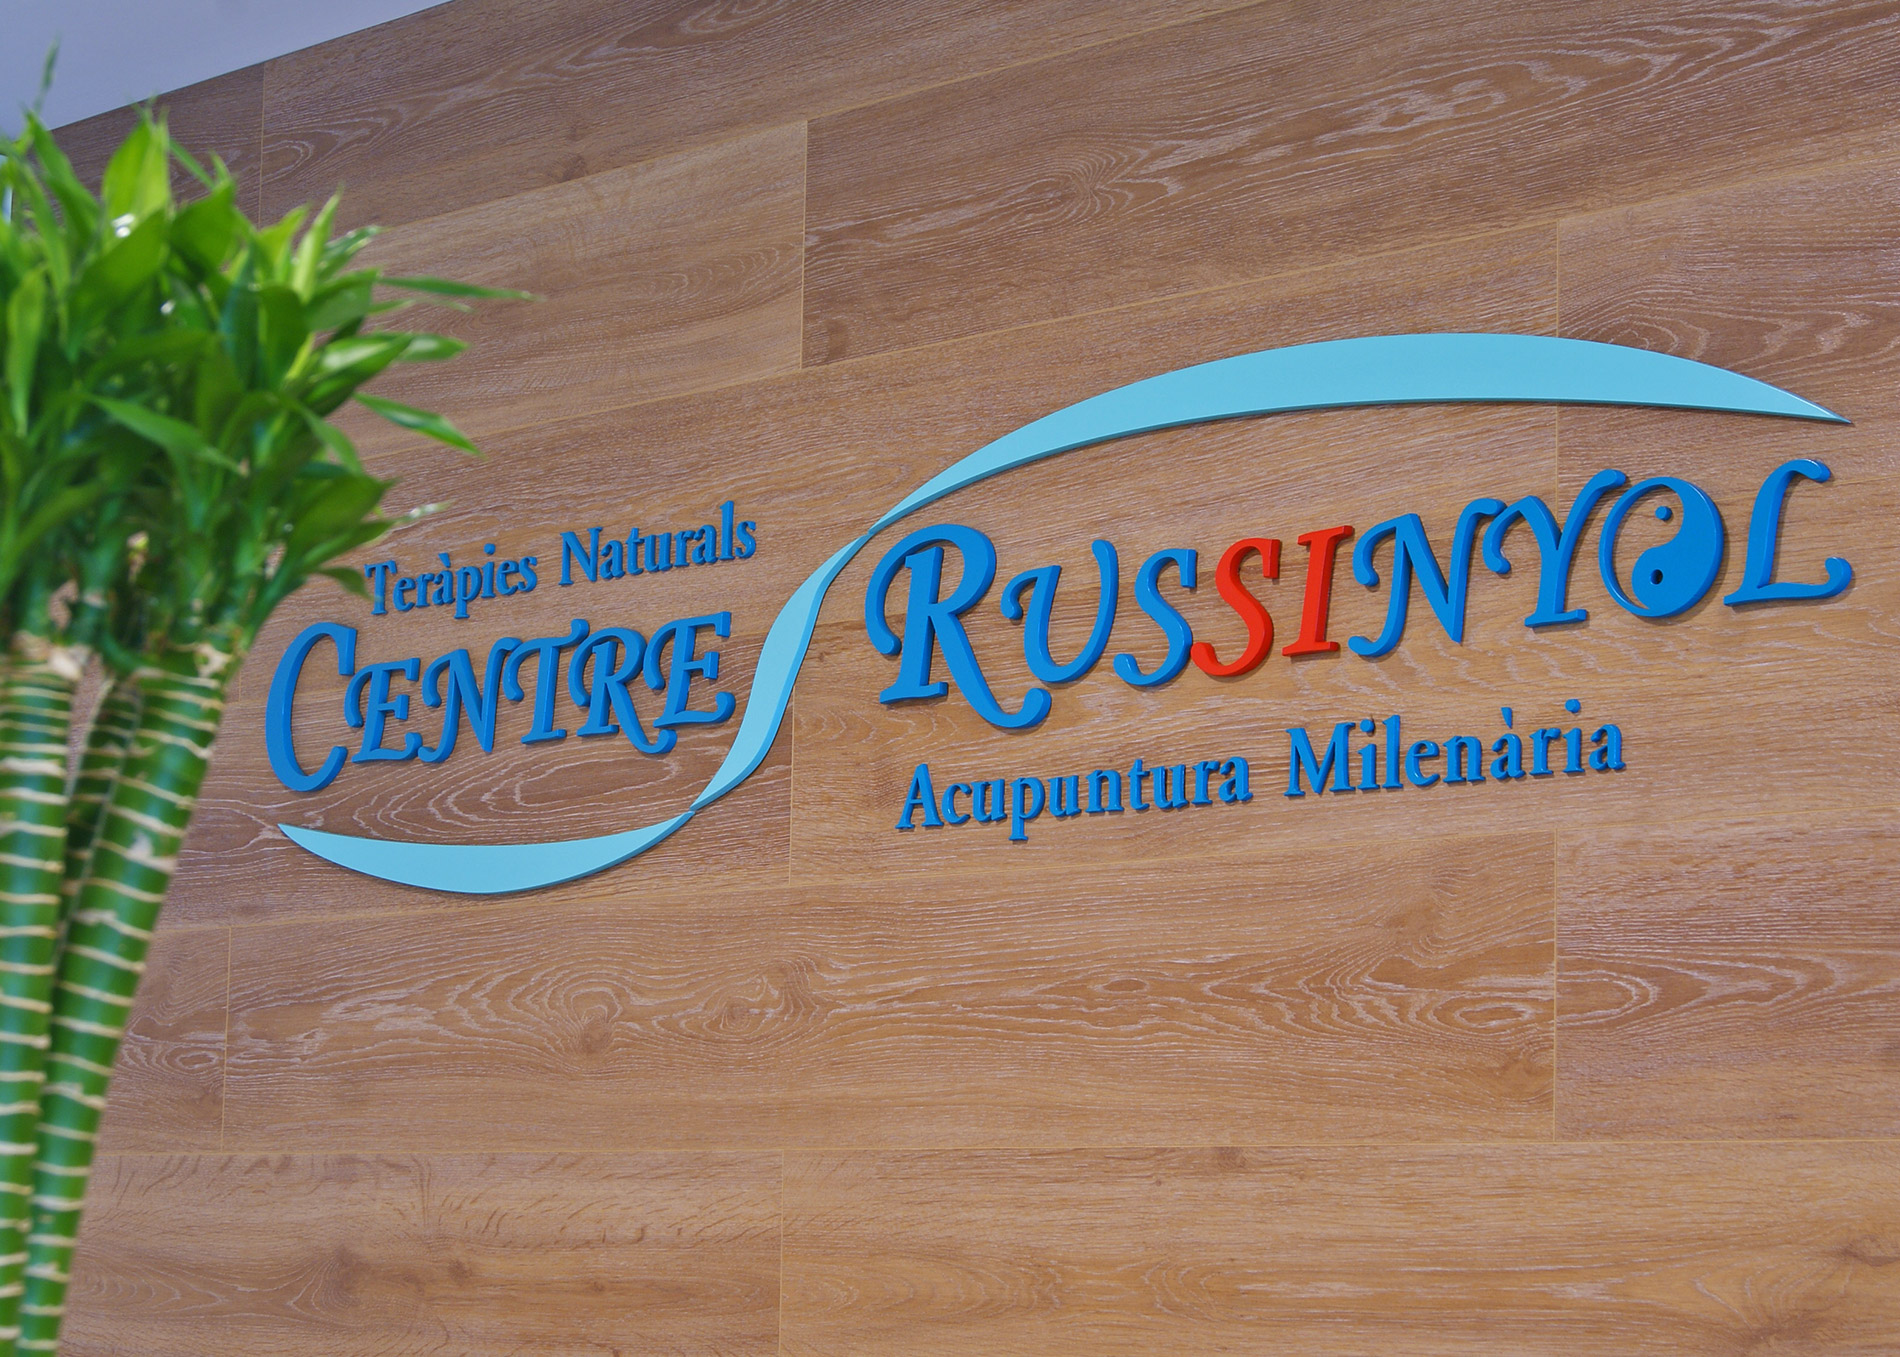 Centre Russinyol